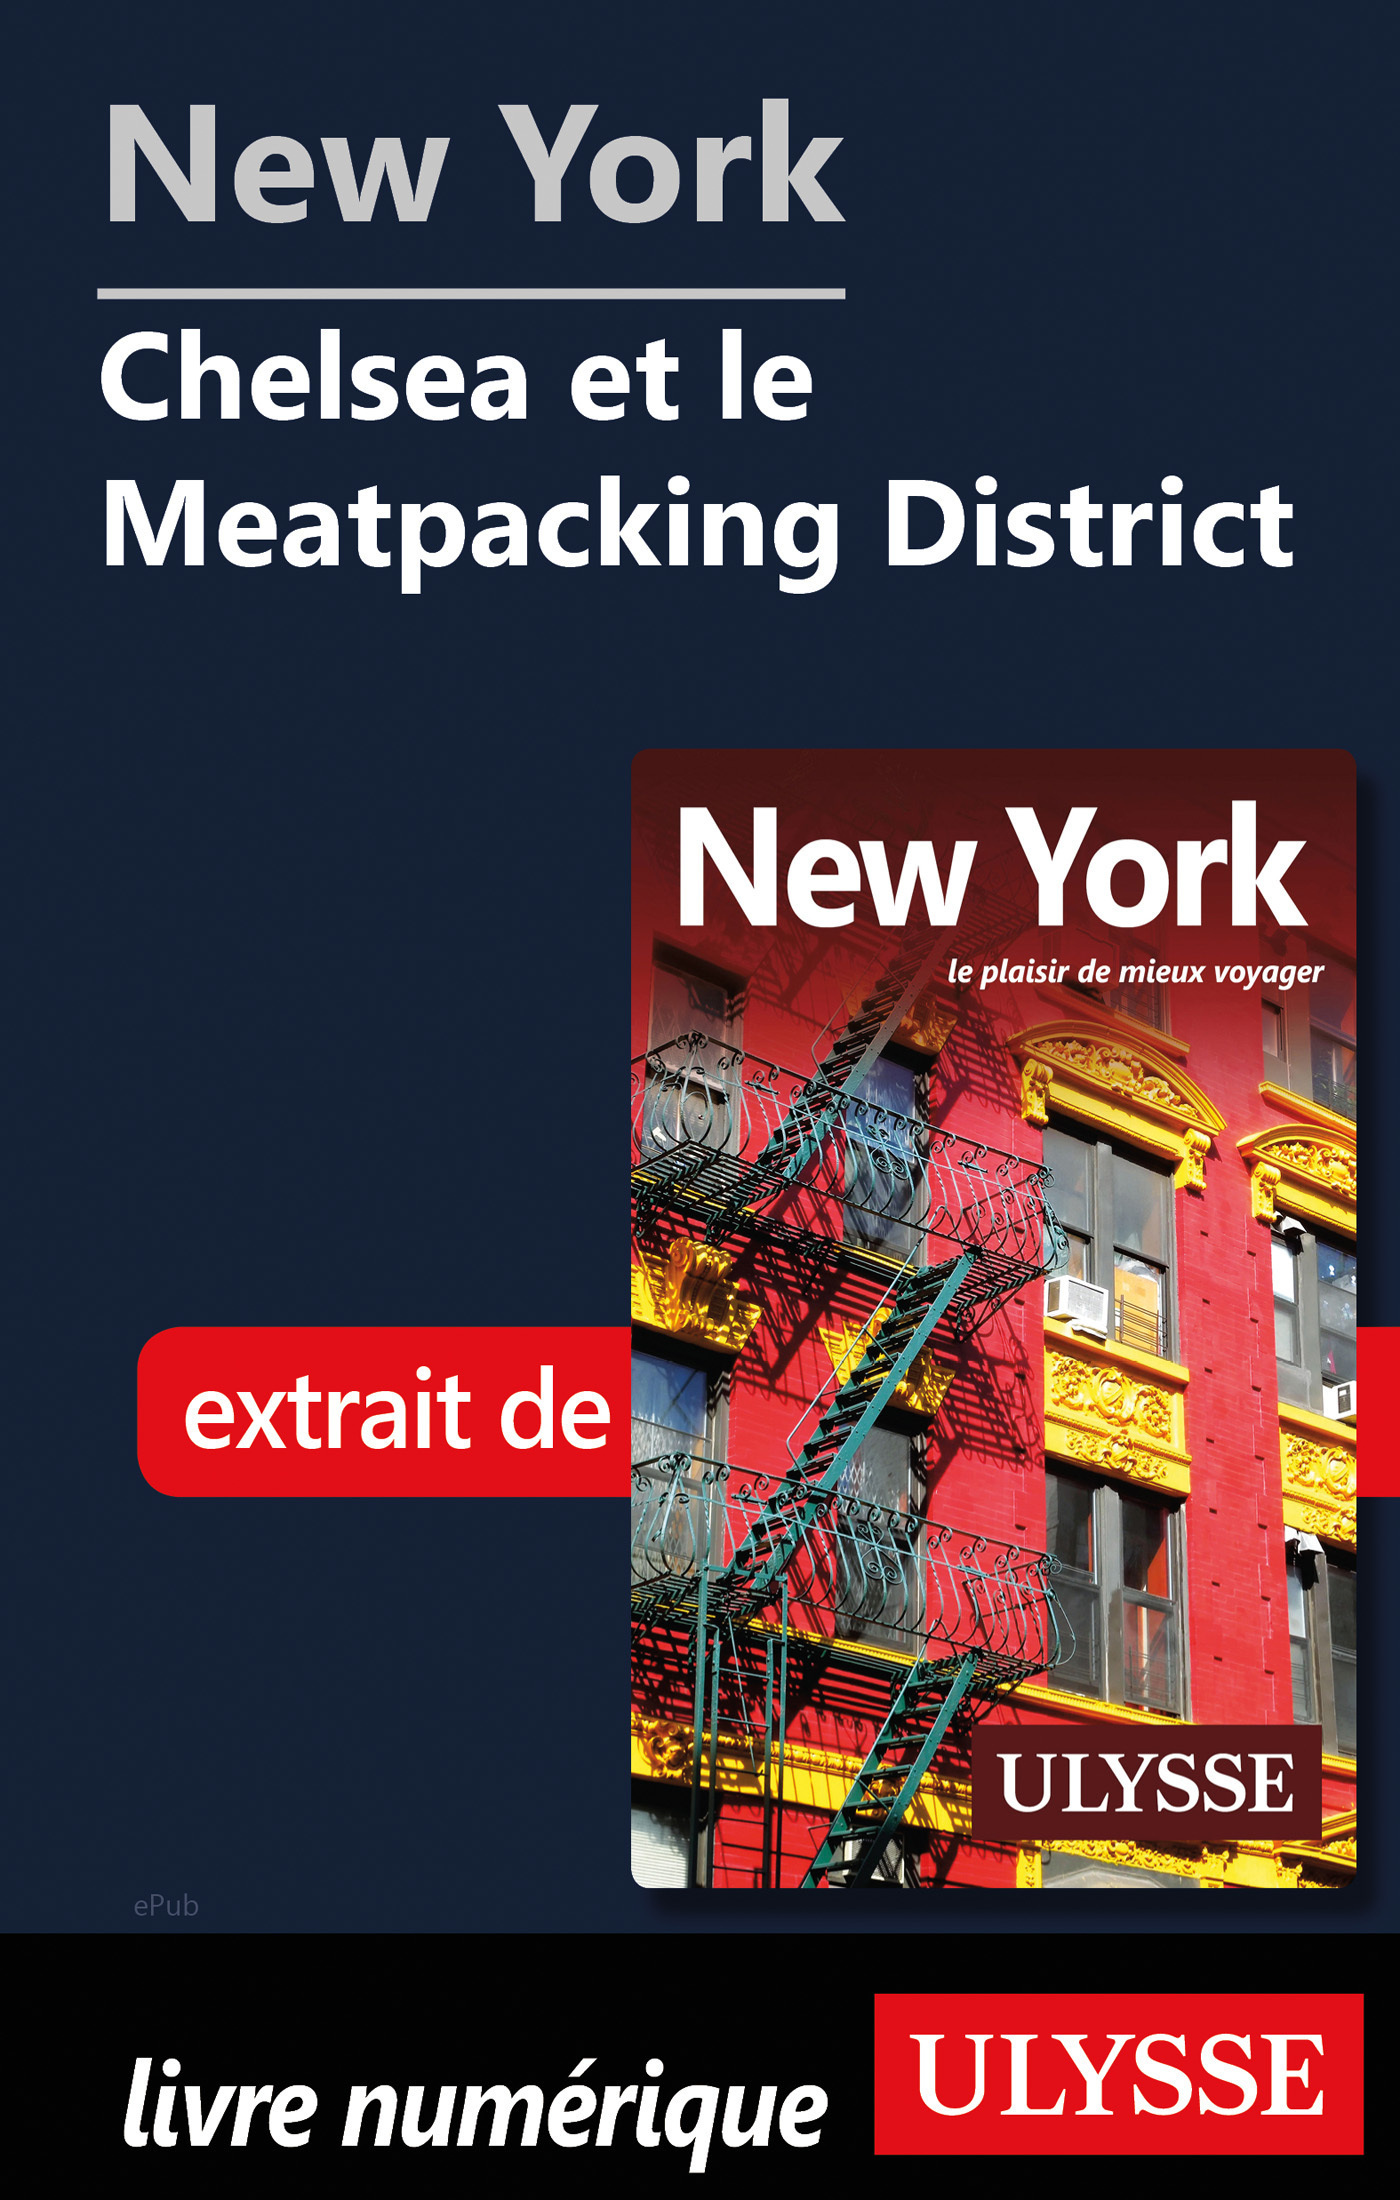 New York - Chelsea et le Meatpacking District